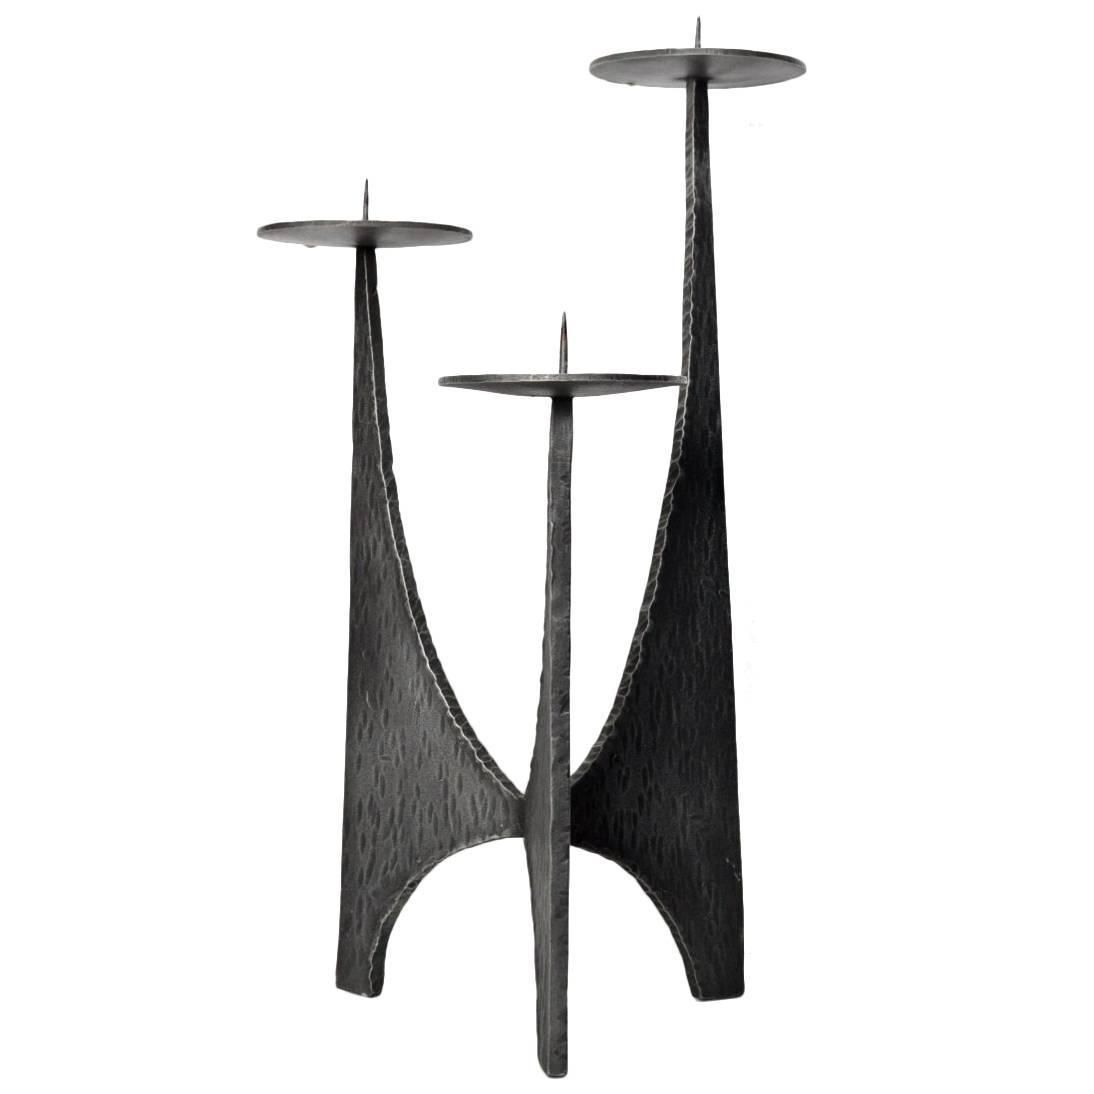 Large Candlestick Holder Brutalist Style, Germany, 1950s